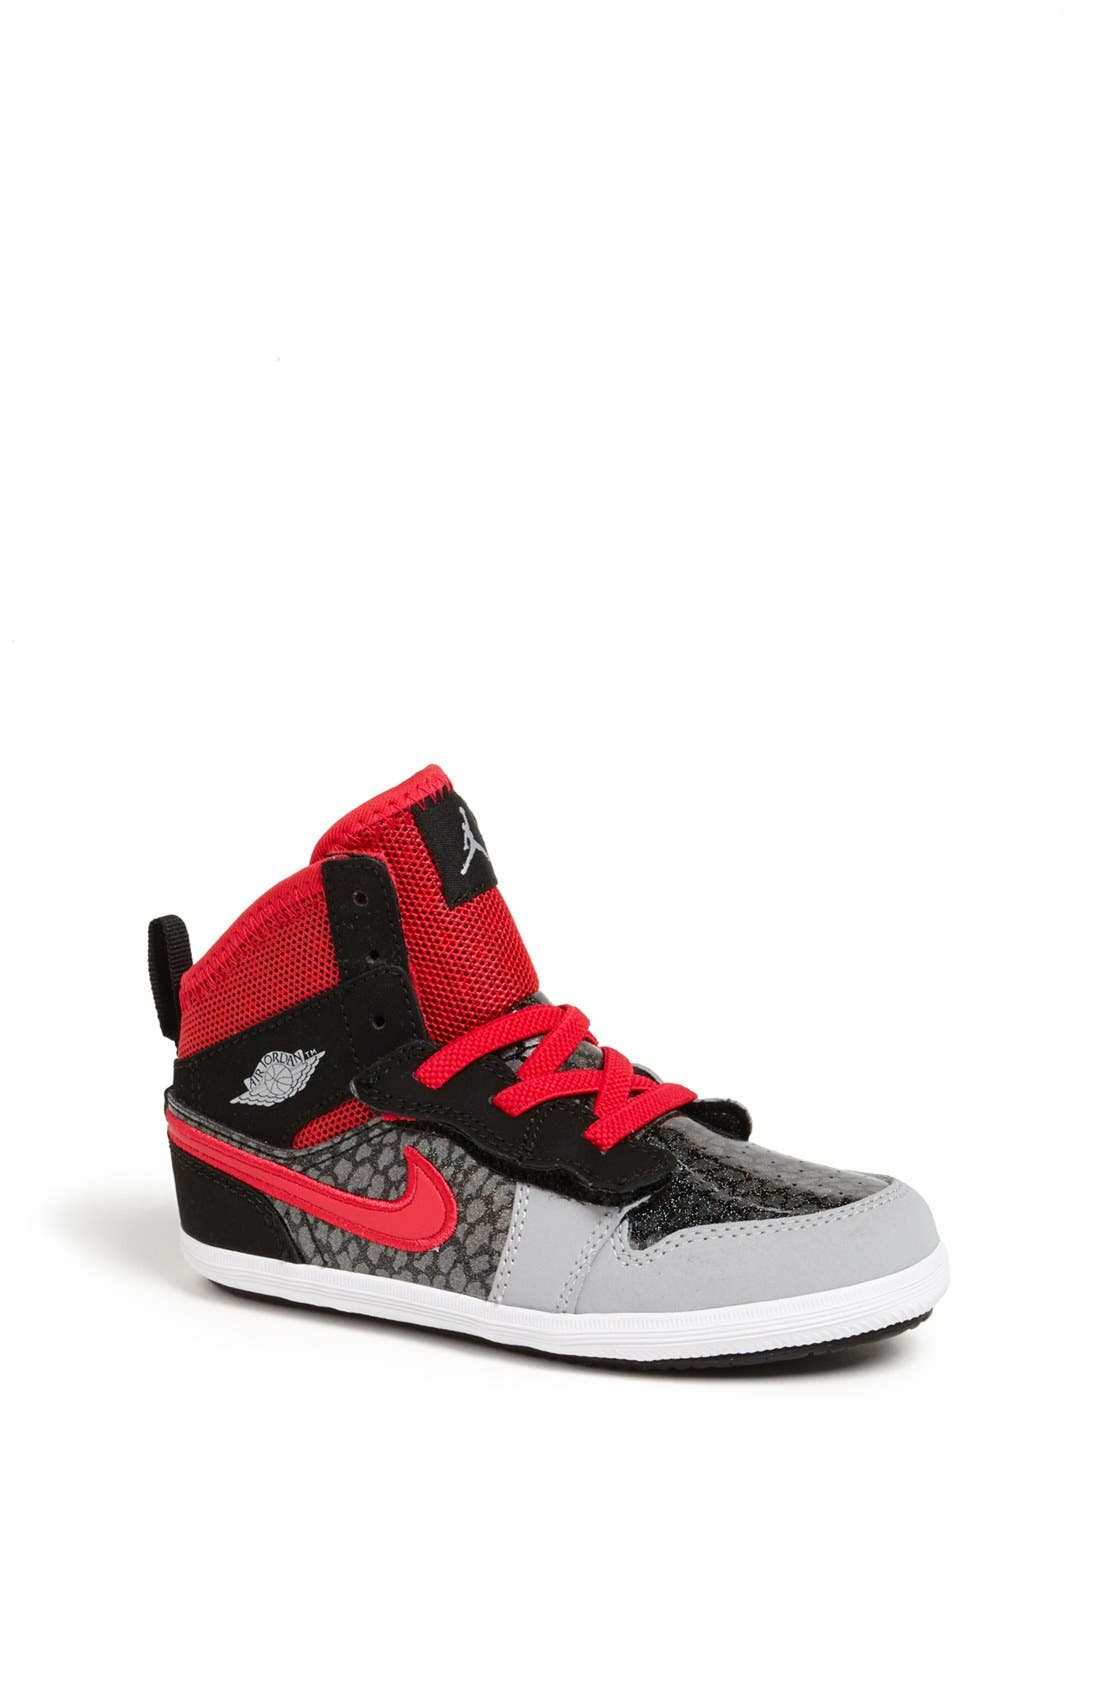 Alternate Image 1 Selected - Nike 'Jordan 1 Skinny High' Sneaker (Baby, Walker & Toddler)